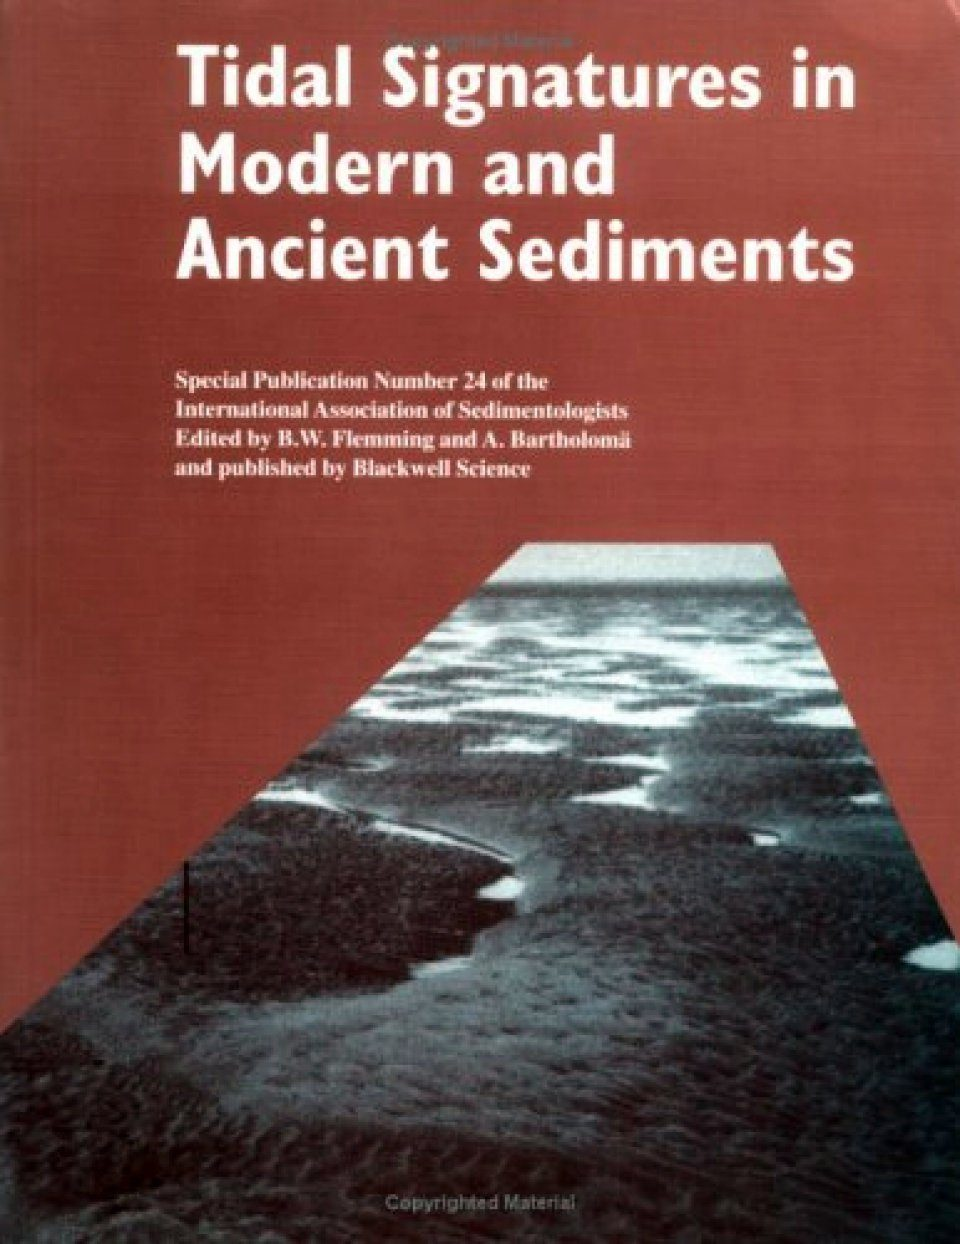 Tidal Signatures in Modern and Ancient Sediments